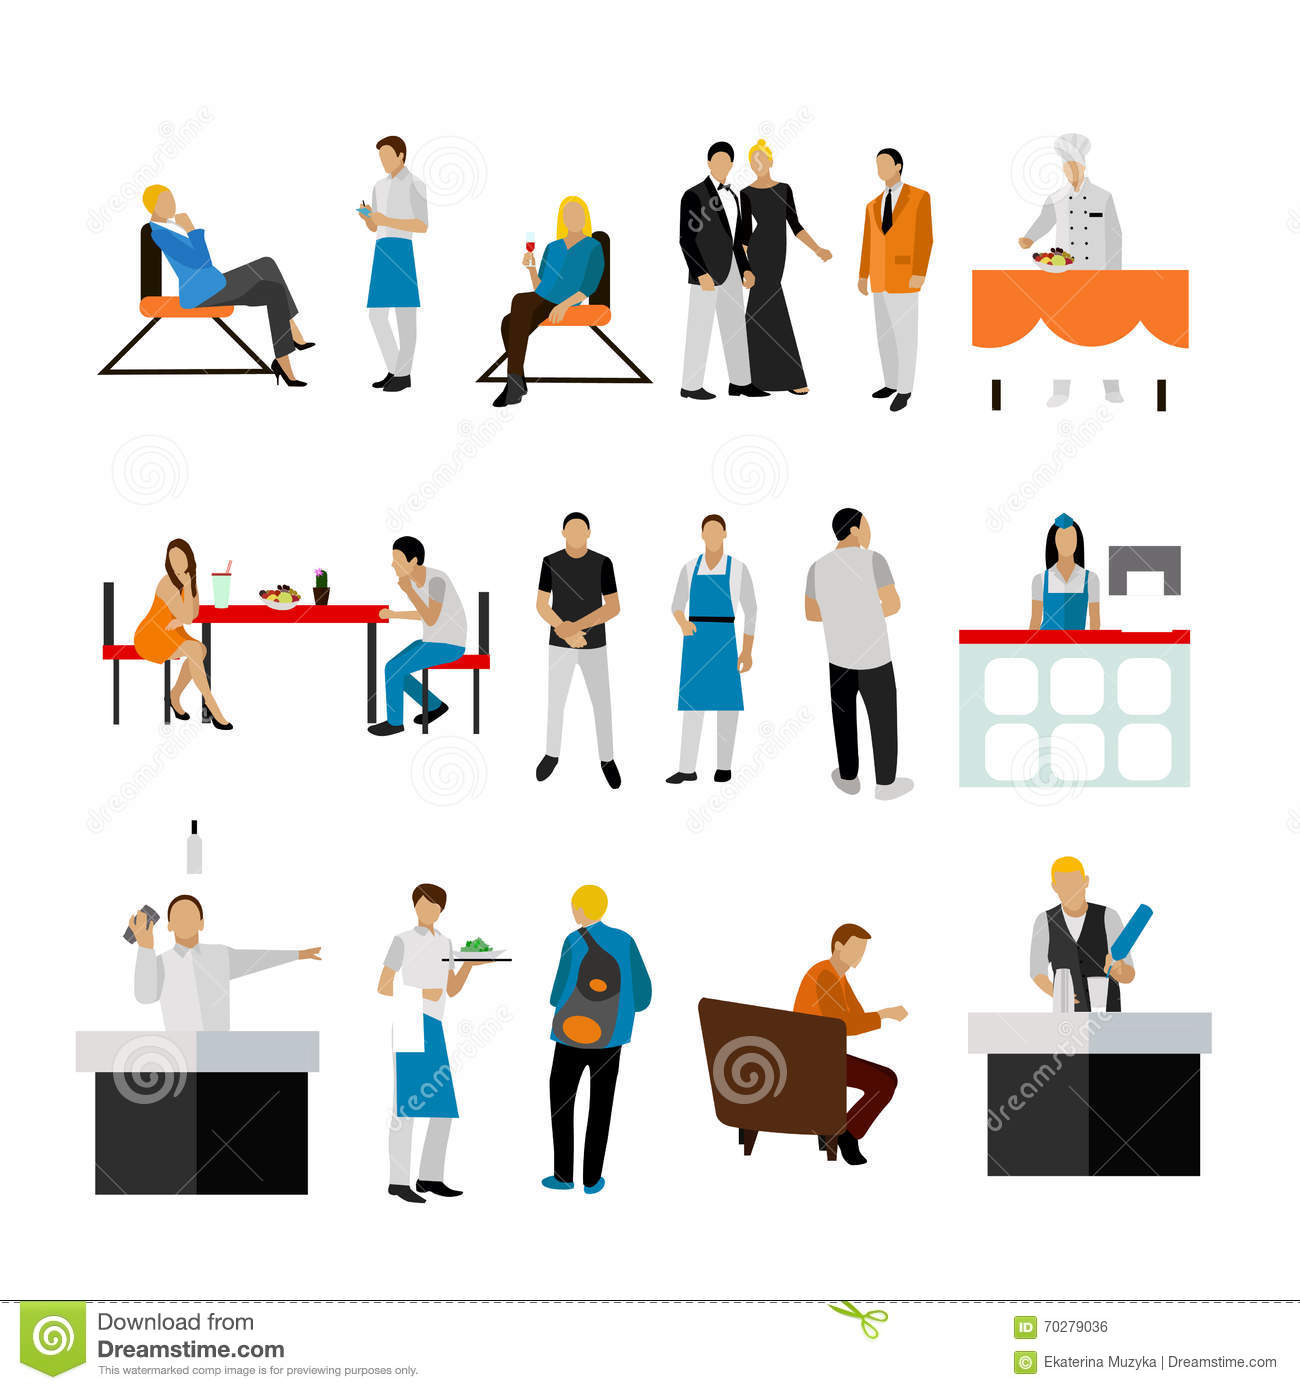 Restaurant Background With People Vector Set Of Restaurant Employees And Visitorspeople Icons On